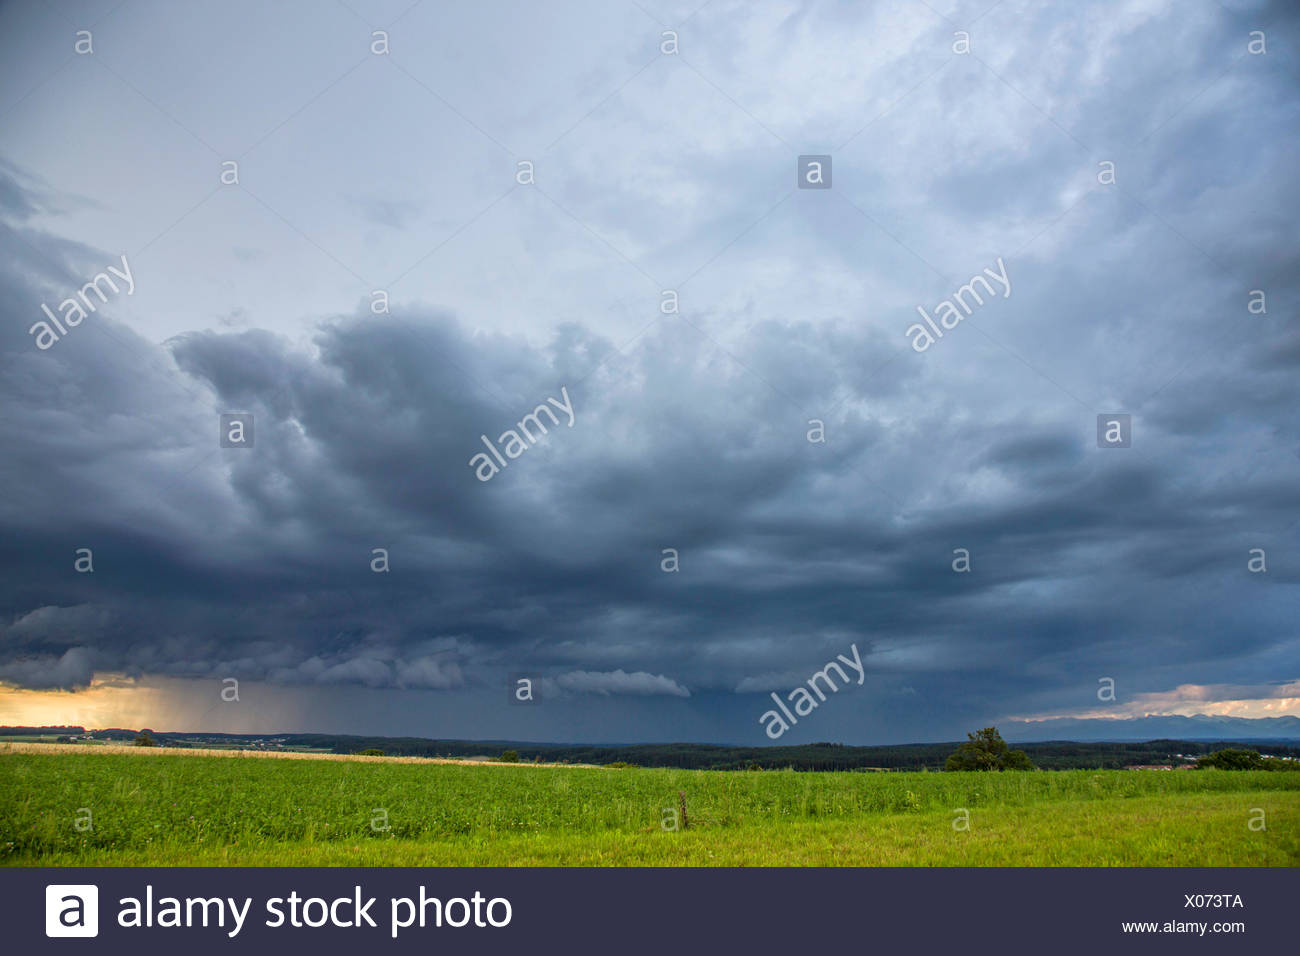 thunder clouds and heavy rain, cumulunimbus clouds, Germany, Bavaria, Alpenvorland - Stock Image